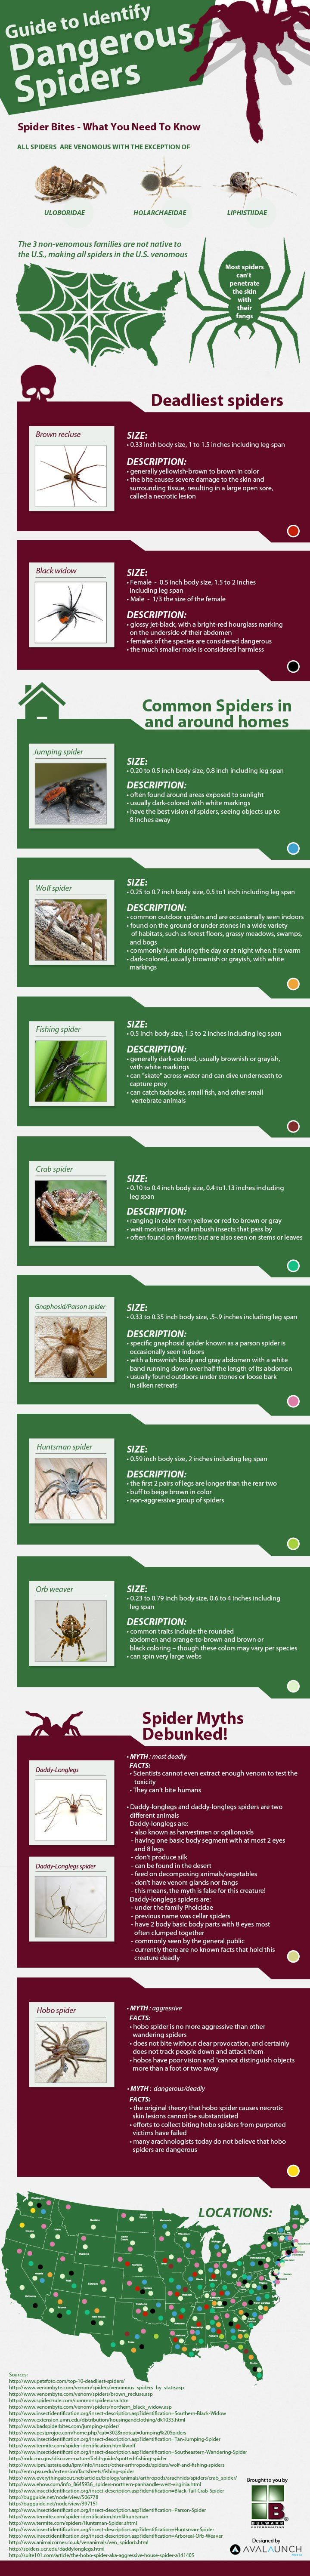 Helpful guide for identifying dangerous spiders - useful for anyone that is spending time outdoors